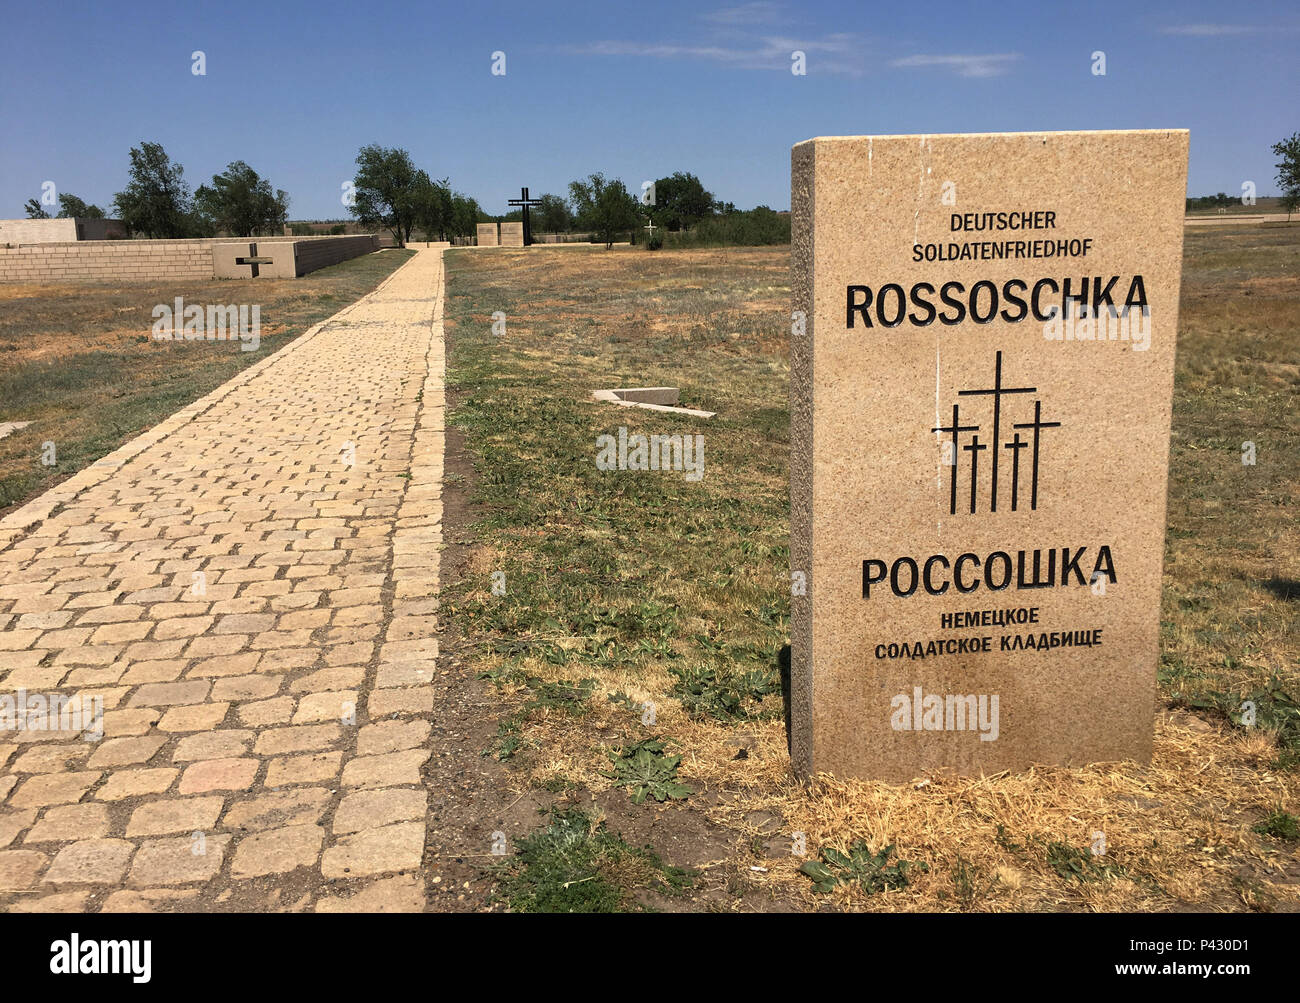 Rossoschka, Russia. 16th June, 2018. The inscription «Military Cemetery Rossoschka» is written on a gravestone at the entrance in Russian and German. Here not only soldiers of the German Wehrmacht are buried, but also members of the Red Army. Only a narrow street separates today's opponents. The remote memorial commemorates one of the worst chapters in World War II: the Battle of Stalingrad. Credit: Martin Moravec/dpa/Alamy Live News - Stock Image